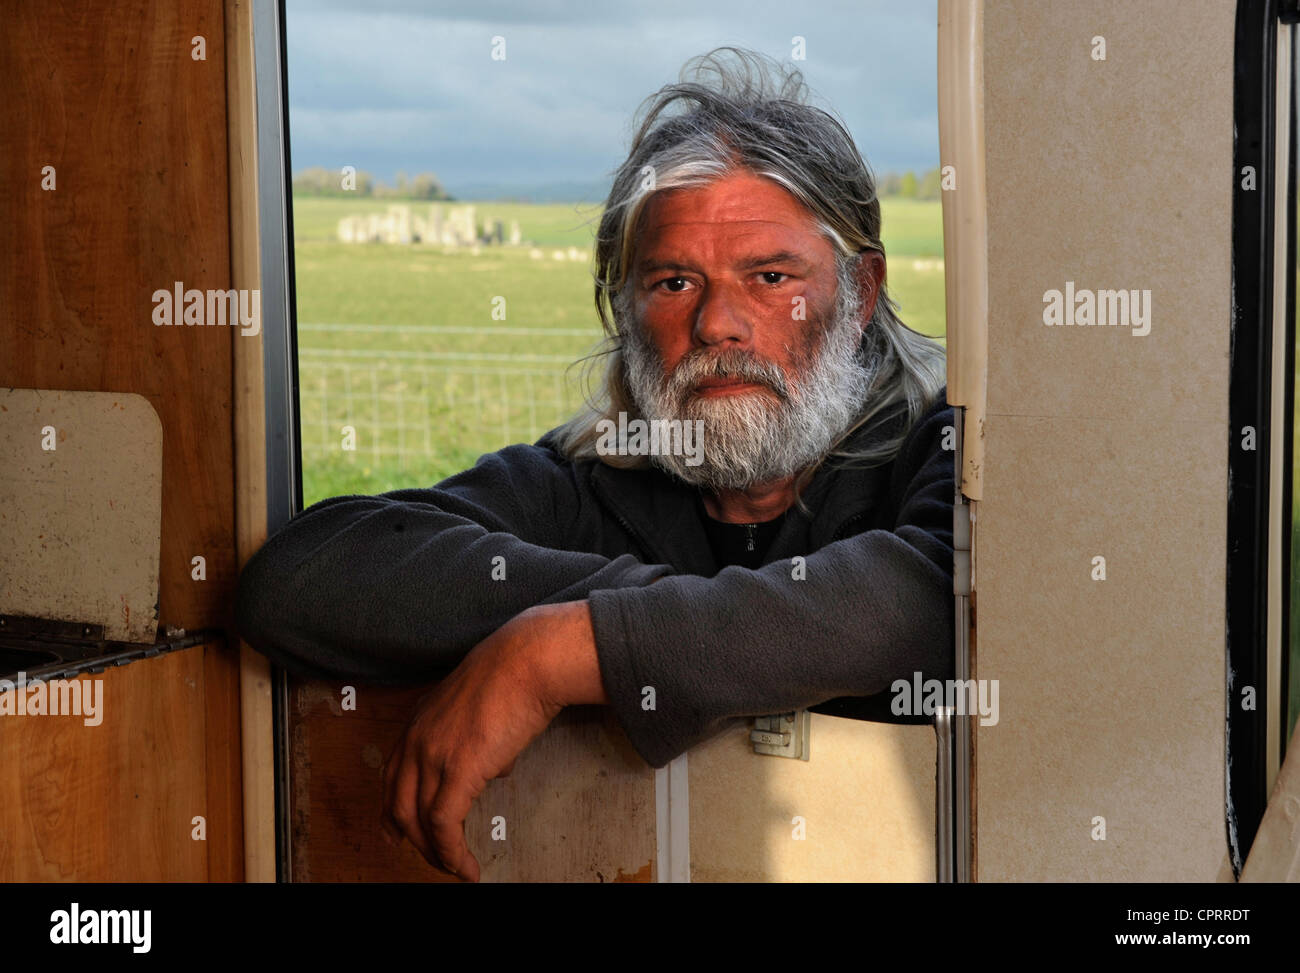 The Druid Arthur Pendragon who lives in a caravan near to Stonehenge as a vigil at the ancient Wiltshire site Uk - Stock Image